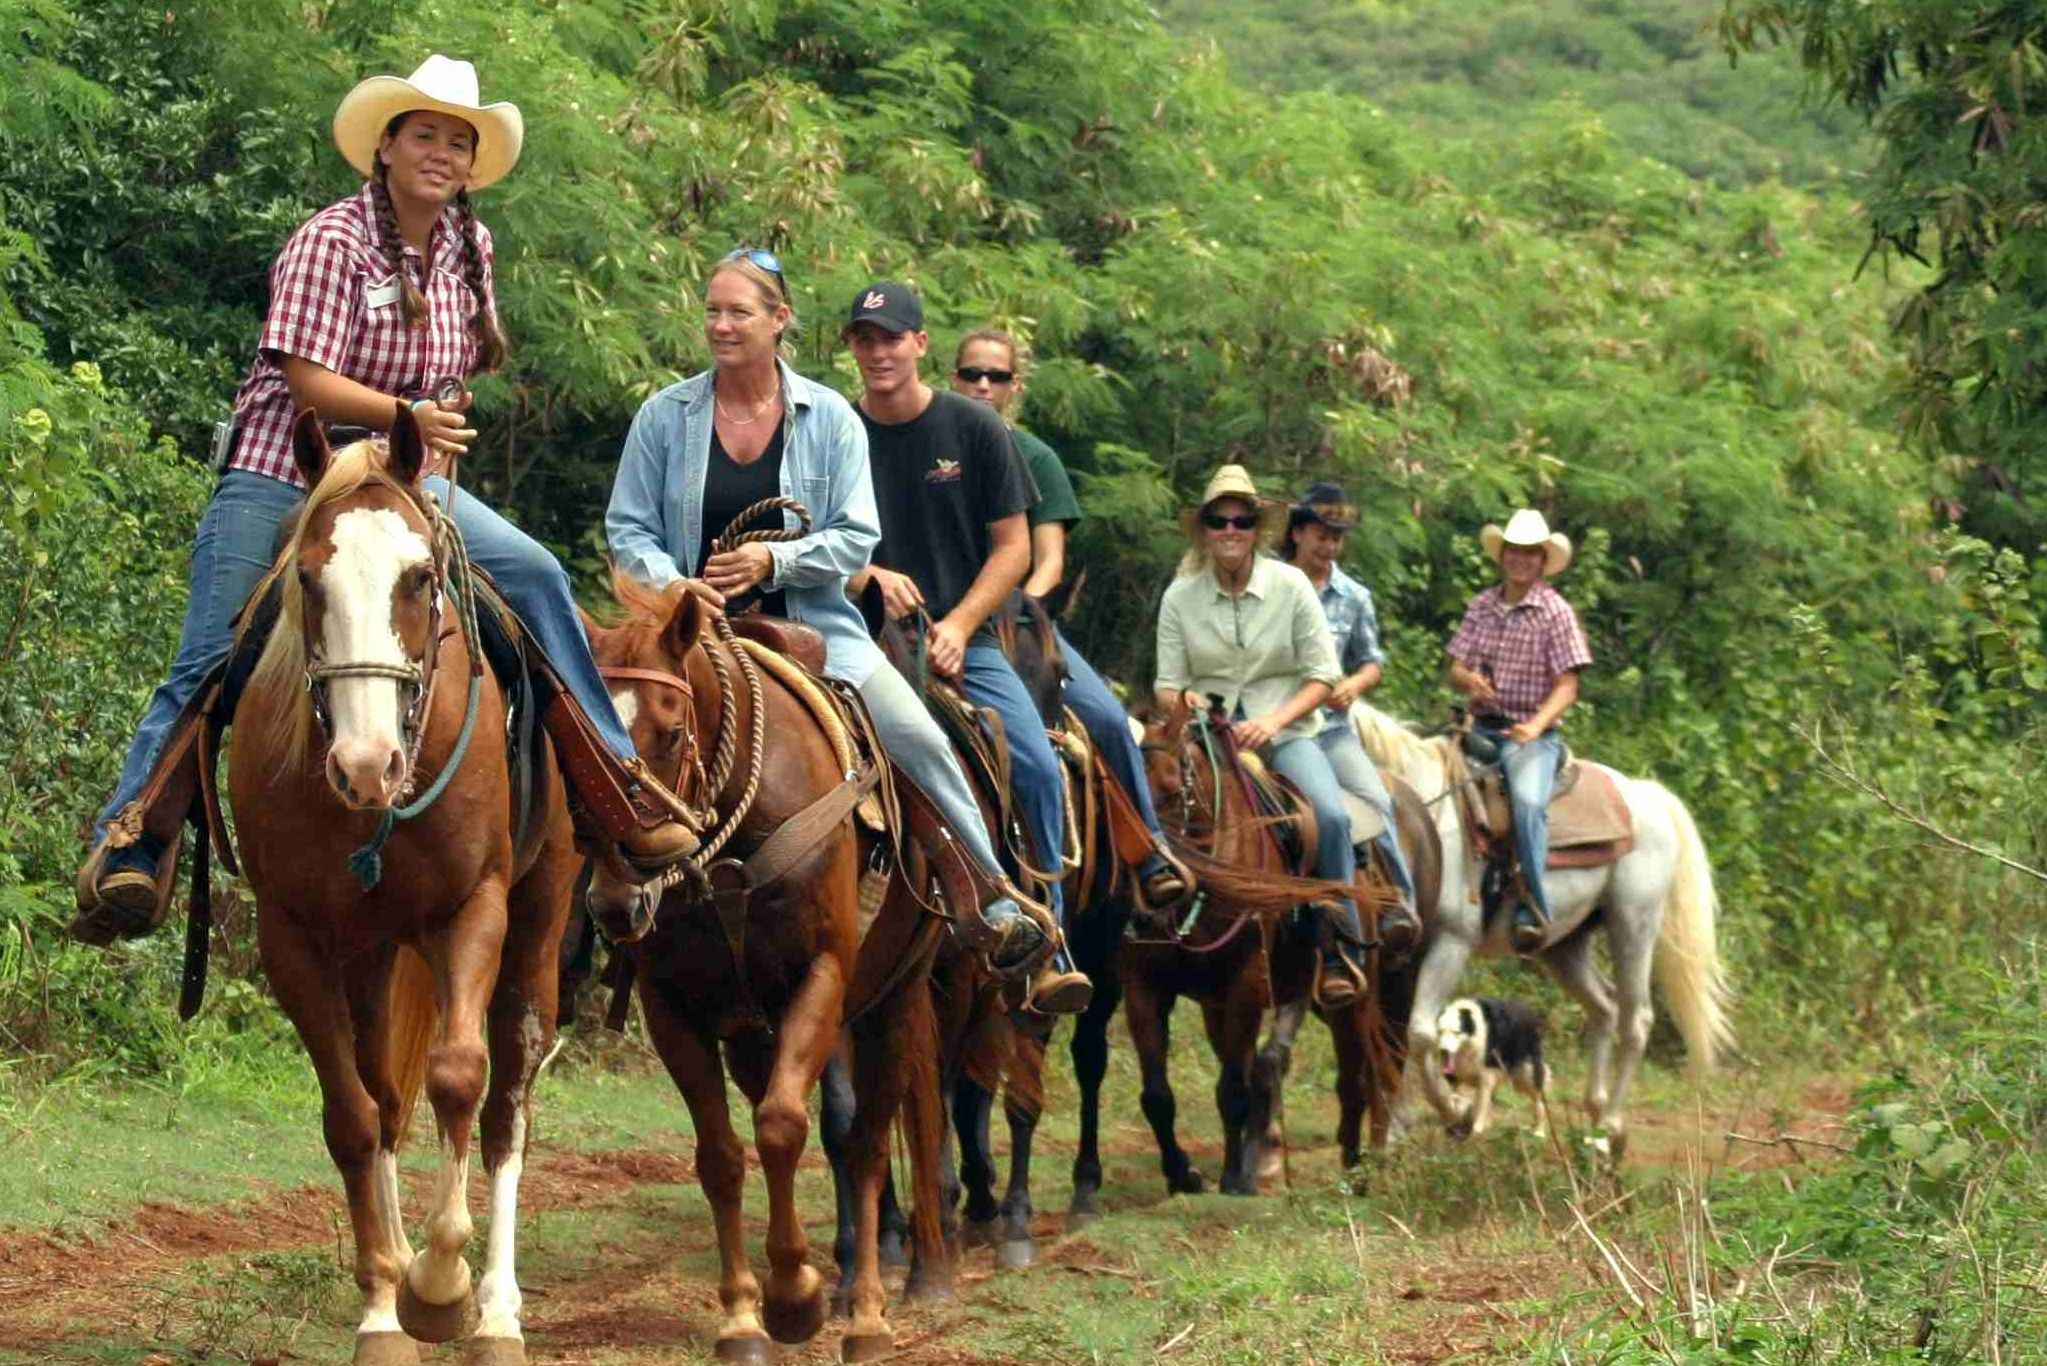 guided trail rides fortvalleystable com   We ♥ Trail Riding